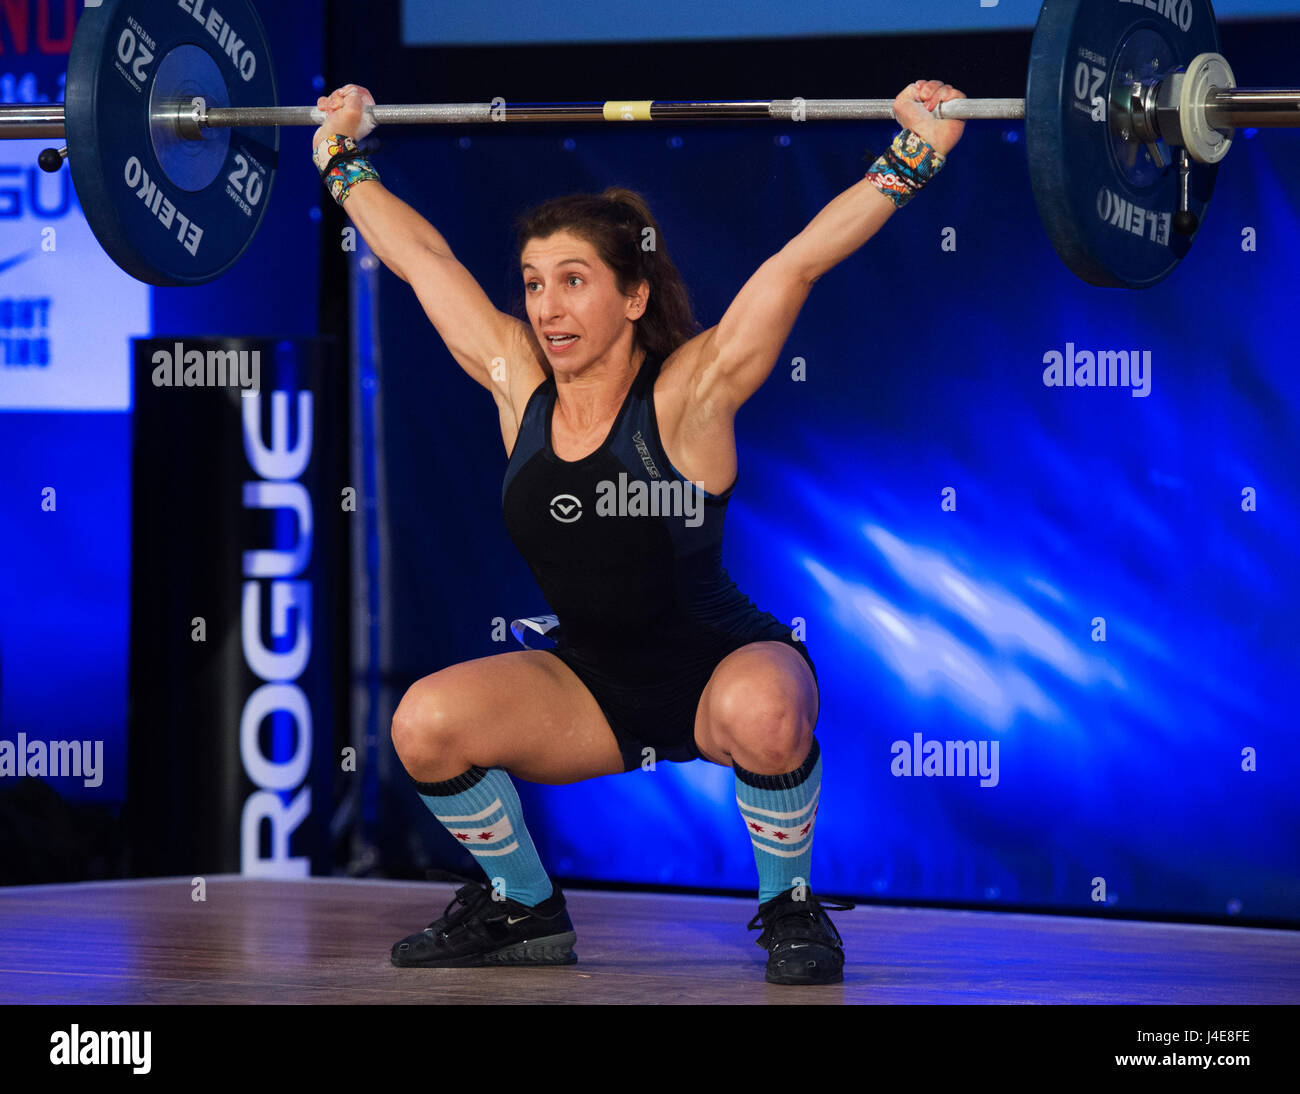 May 12, 2017: Gina Giannetti competes in the Womens 48kg. class at the USA Weightlifting National Championships - Stock Image